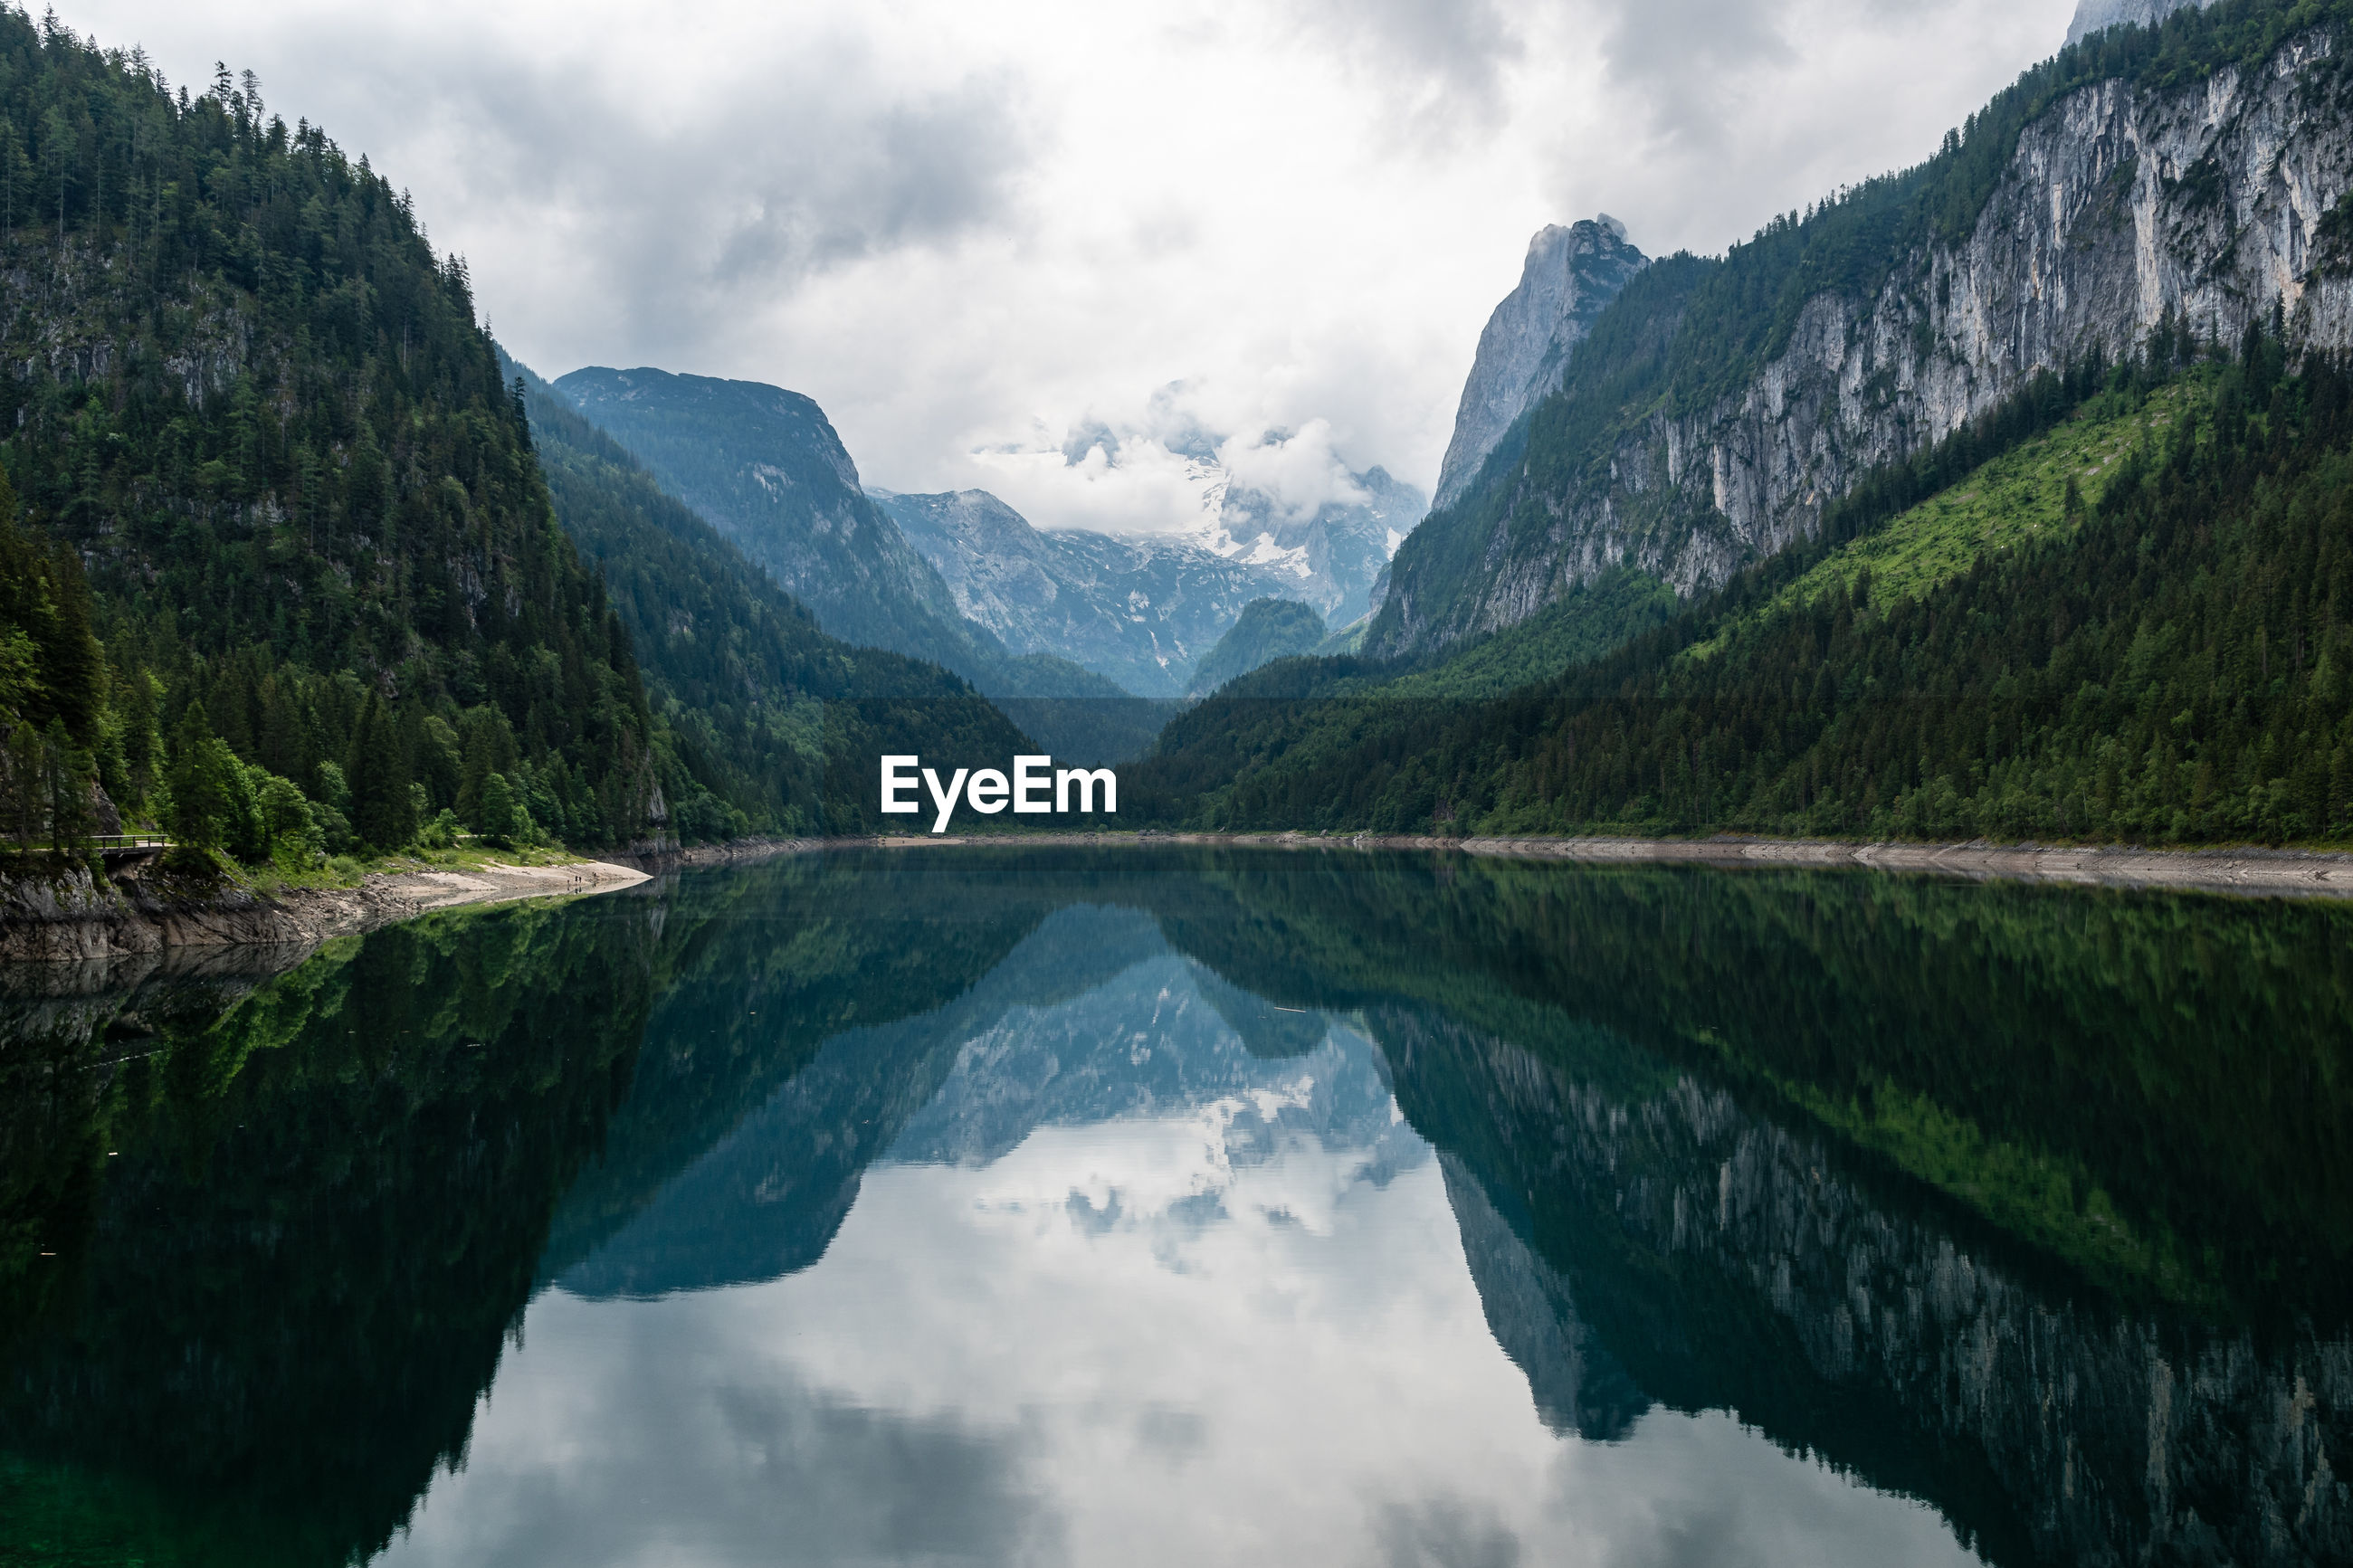 SCENIC VIEW OF MOUNTAINS BY LAKE AGAINST SKY